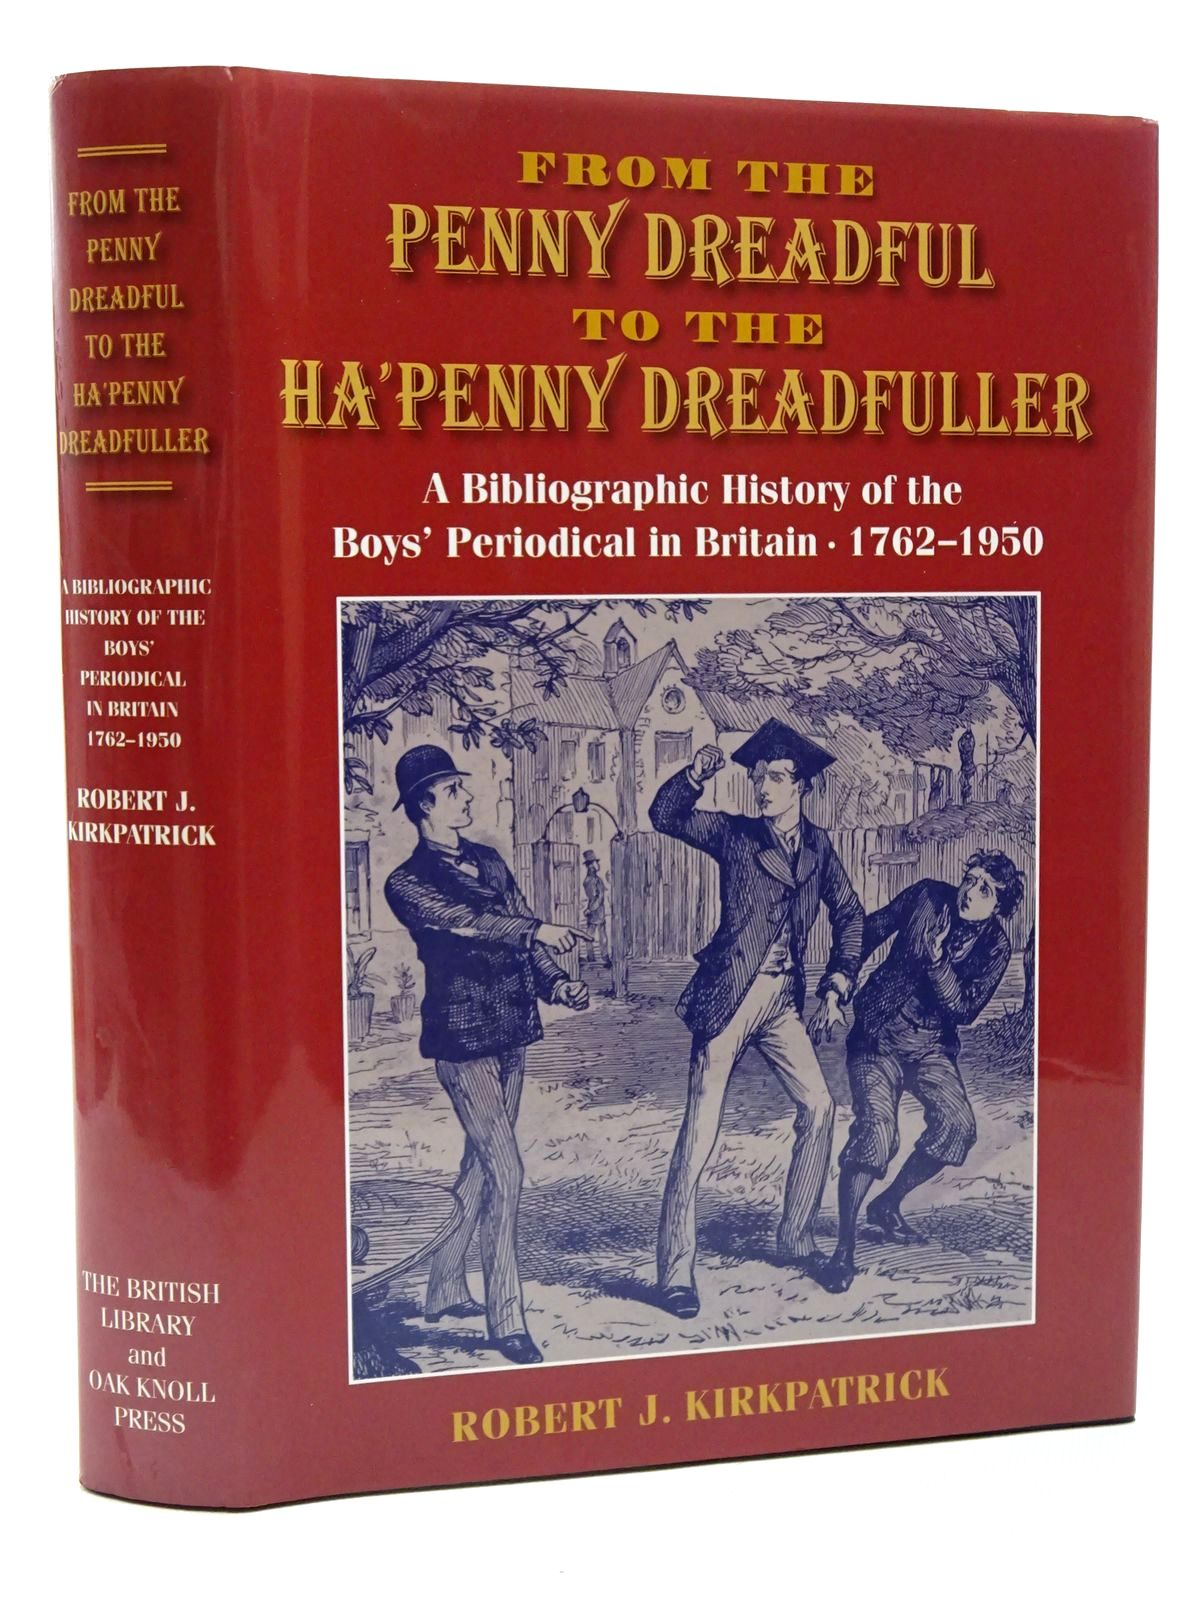 Photo of FROM THE PENNY DREADFUL TO THE HA'PENNY DREADFUL written by Kirkpatrick, Robert J. published by The British Library, Oak Knoll Press (STOCK CODE: 2124522)  for sale by Stella & Rose's Books